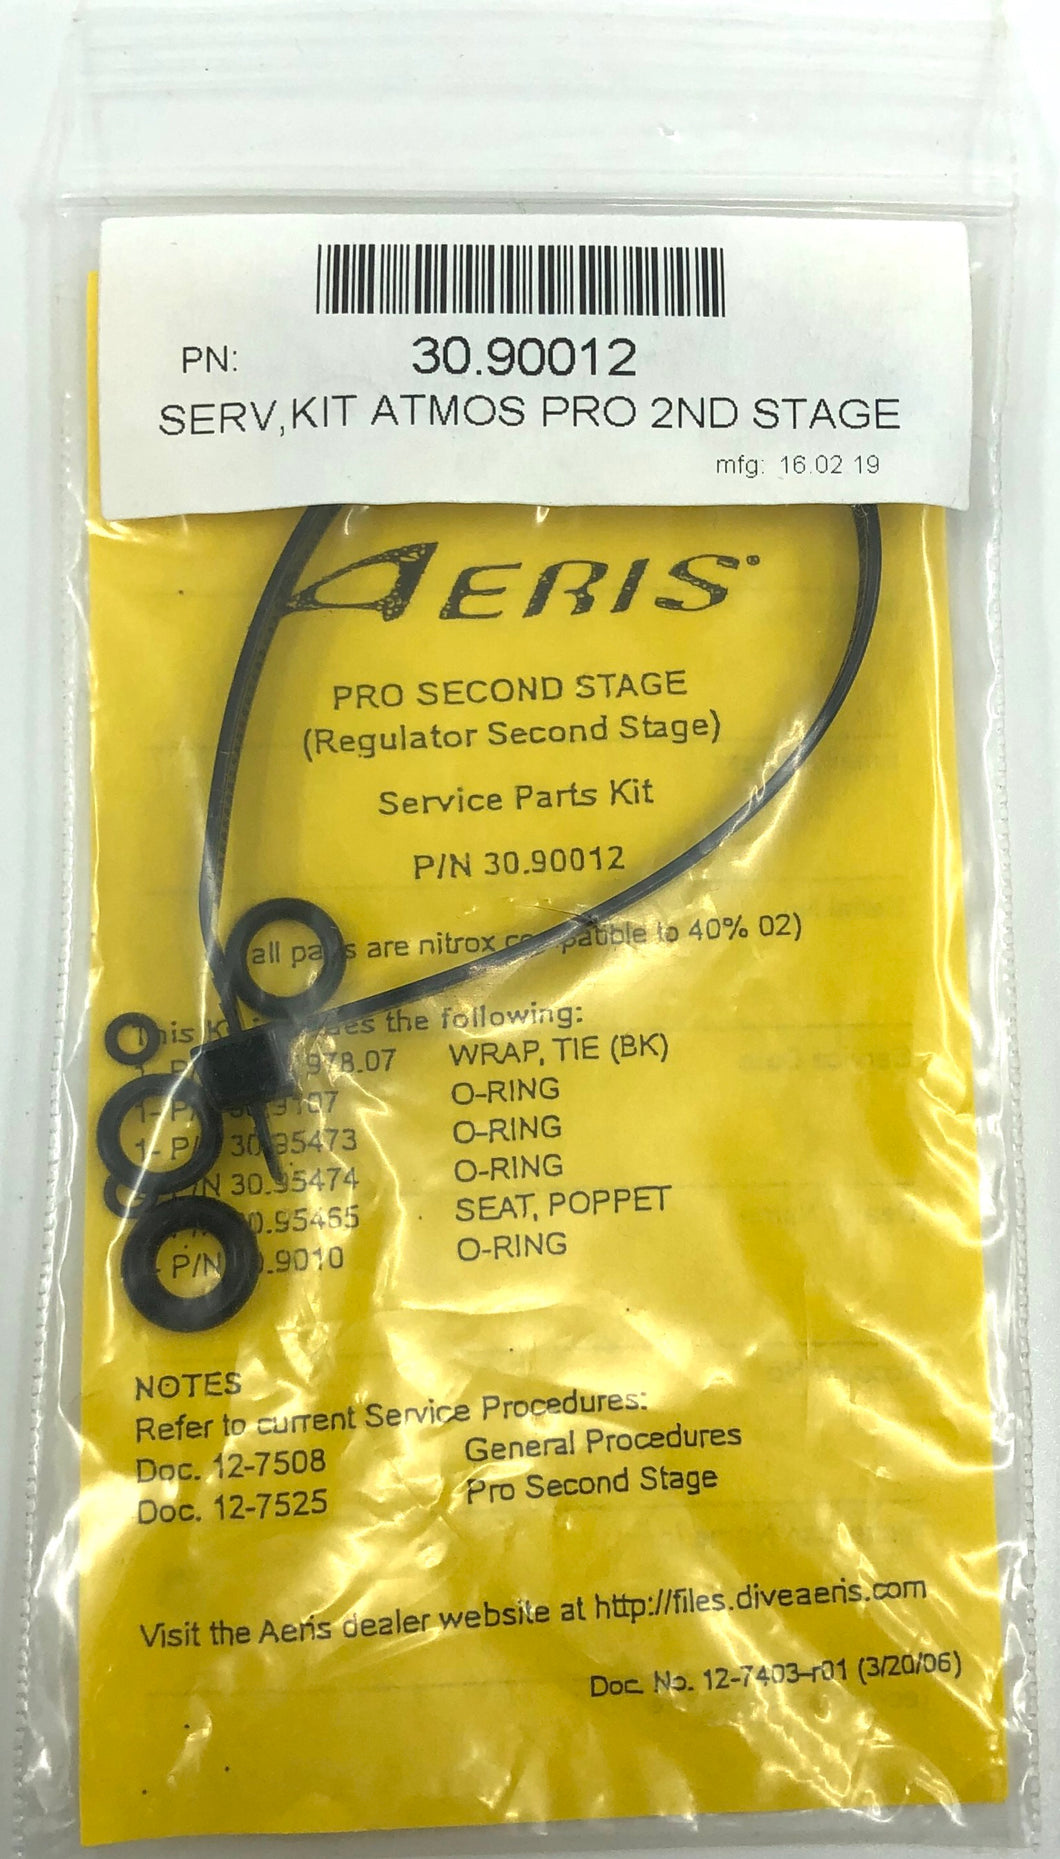 Aeris Atmos Pro Second Stage Service Kit 30.90012